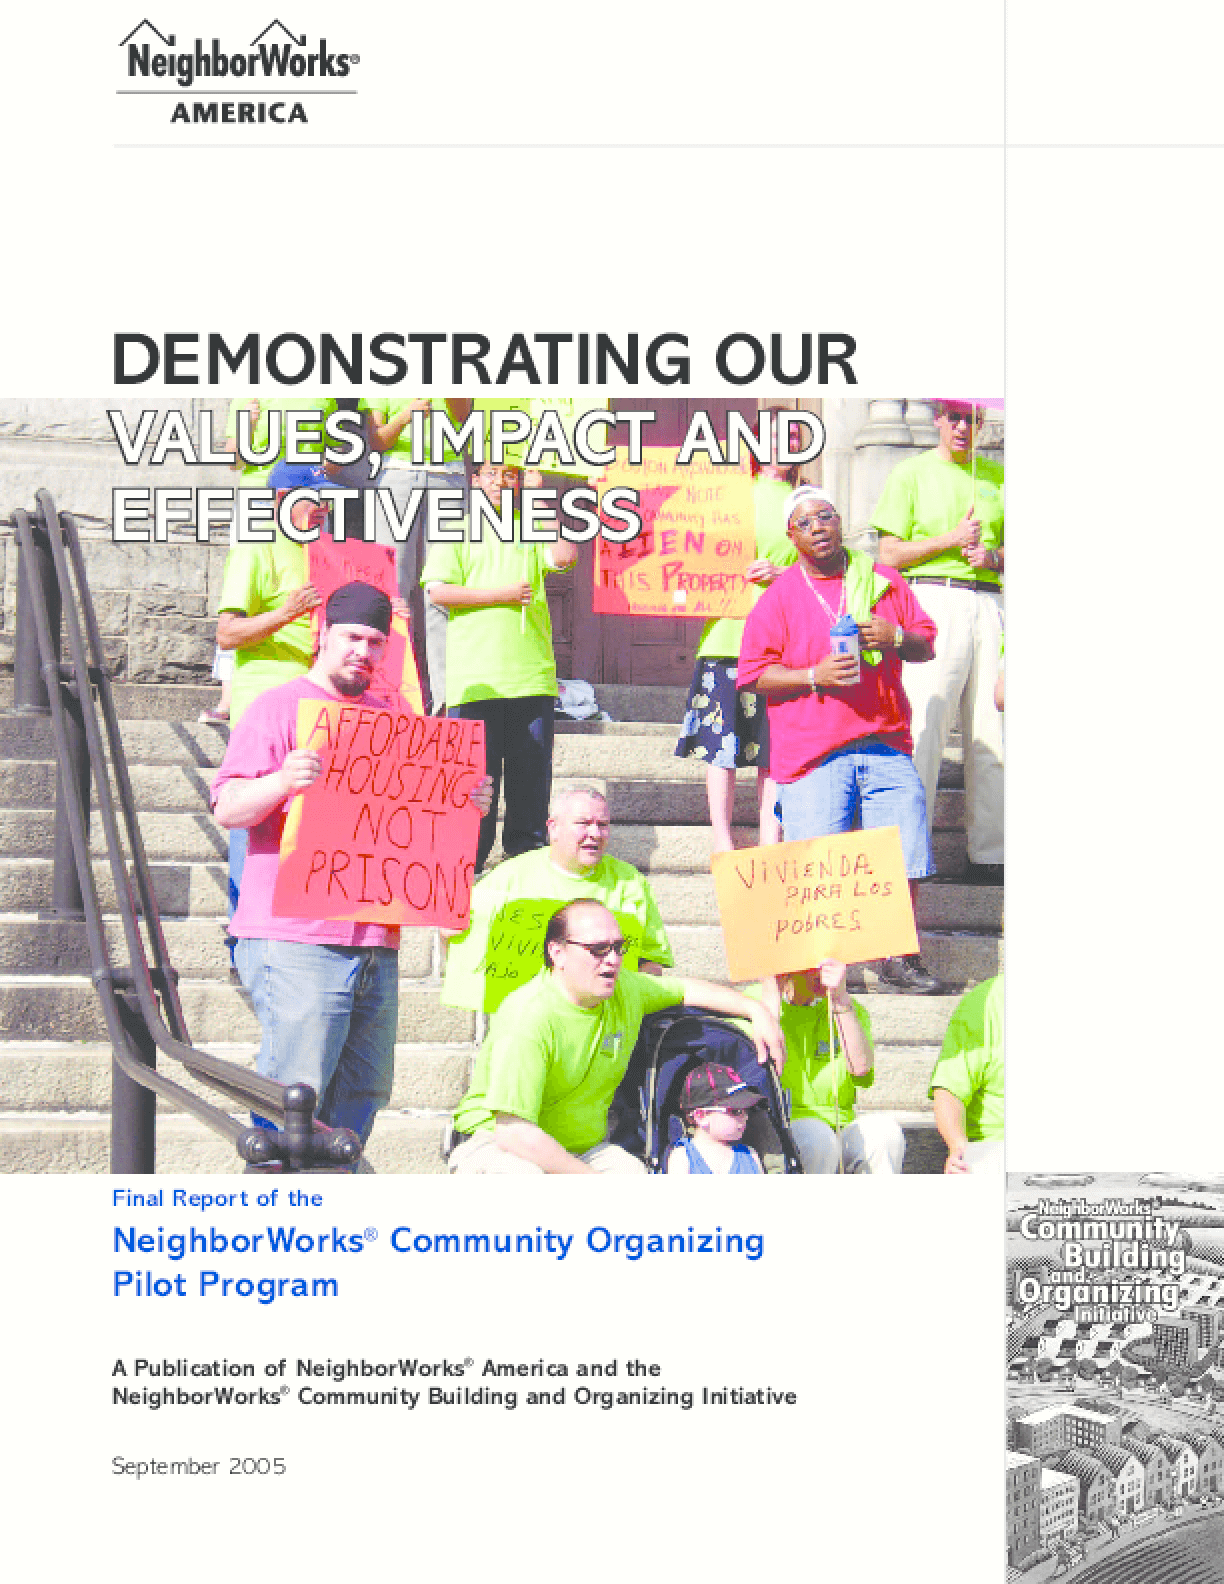 Demonstrating Our Values, Impact and Effectiveness: Final Report of the NeighborWorks Community Organizing Pilot Program